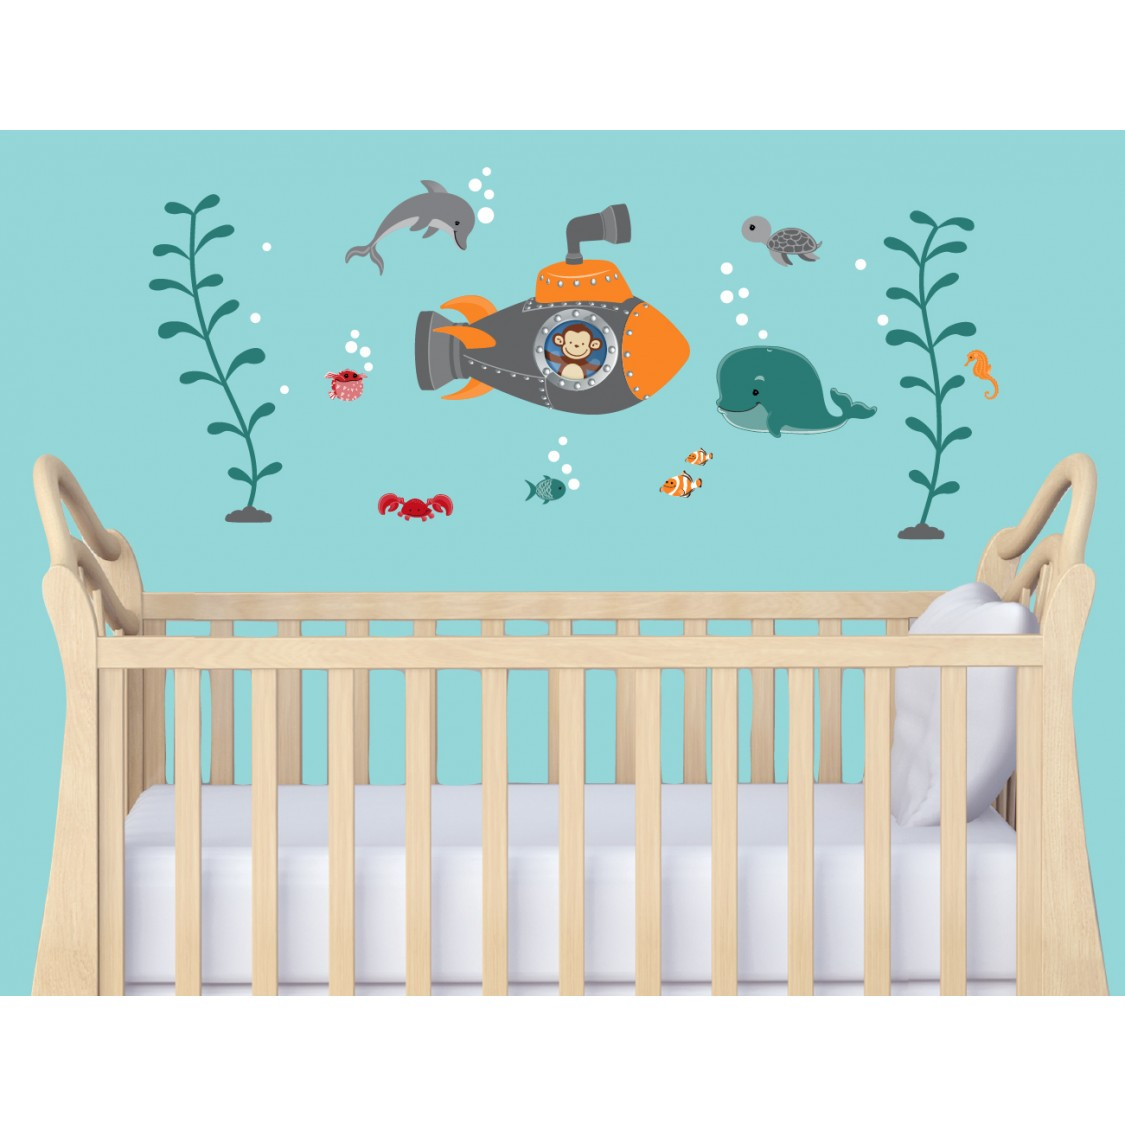 Removable Nursery Wall Decals With Nautical Wall Decor For Baby Room